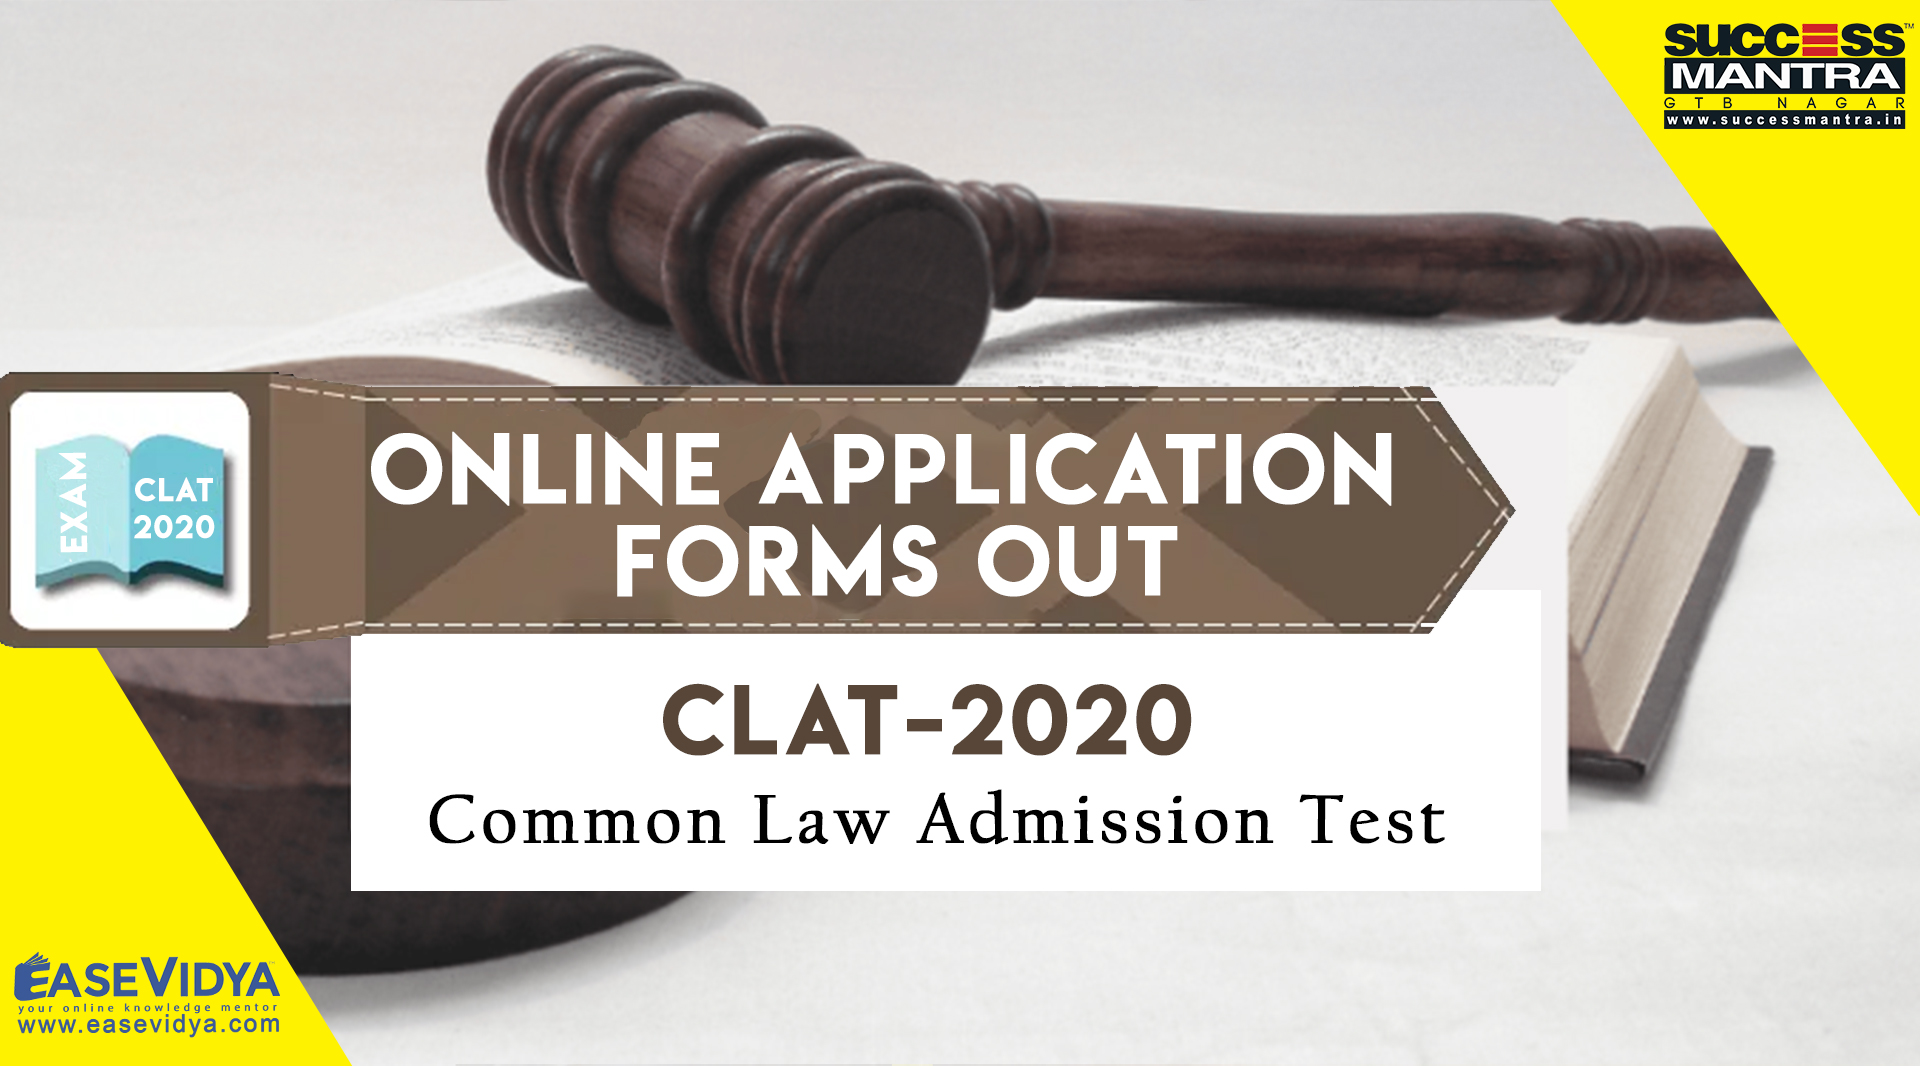 CLAT 2020 APPLICATION FORMS OUT | Know the Dates, Application, Eligibility, Syllabus, Last Date to Apply, Pattern and All About CLAT Entrance Exam